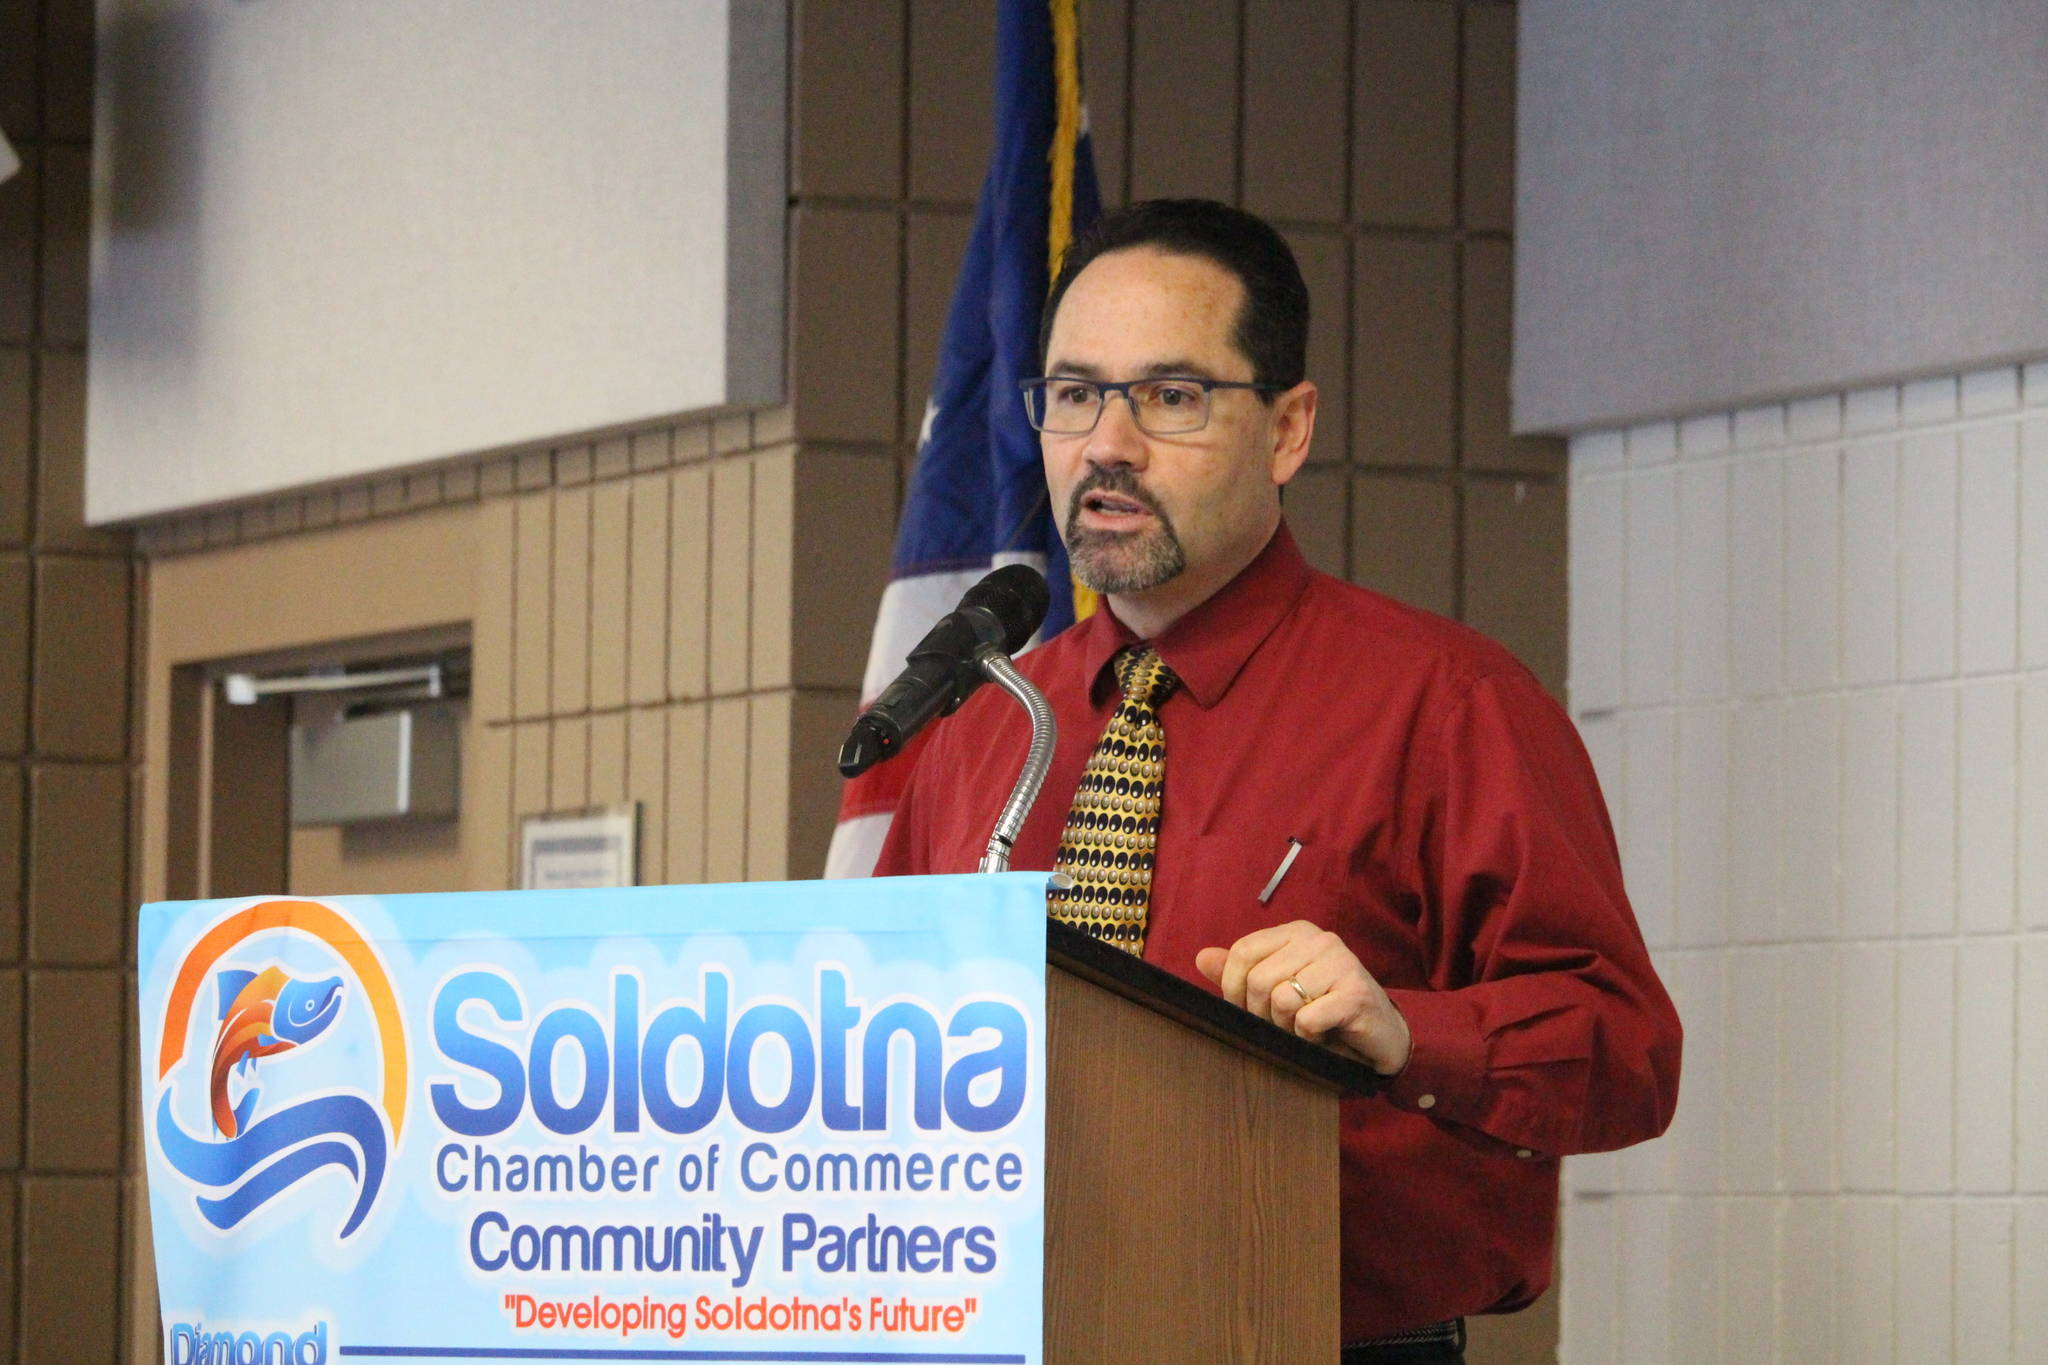 John O'Brien, superintendent for the Kenai Peninsula School District, gives a presentation to the Soldotna Chamber of Commerce at the Soldotna Regional Sports Complex in Soldotna, Alaska, on Wednesday, Jan. 22, 2020. (Photo by Brian Mazurek/Peninsula Clarion)